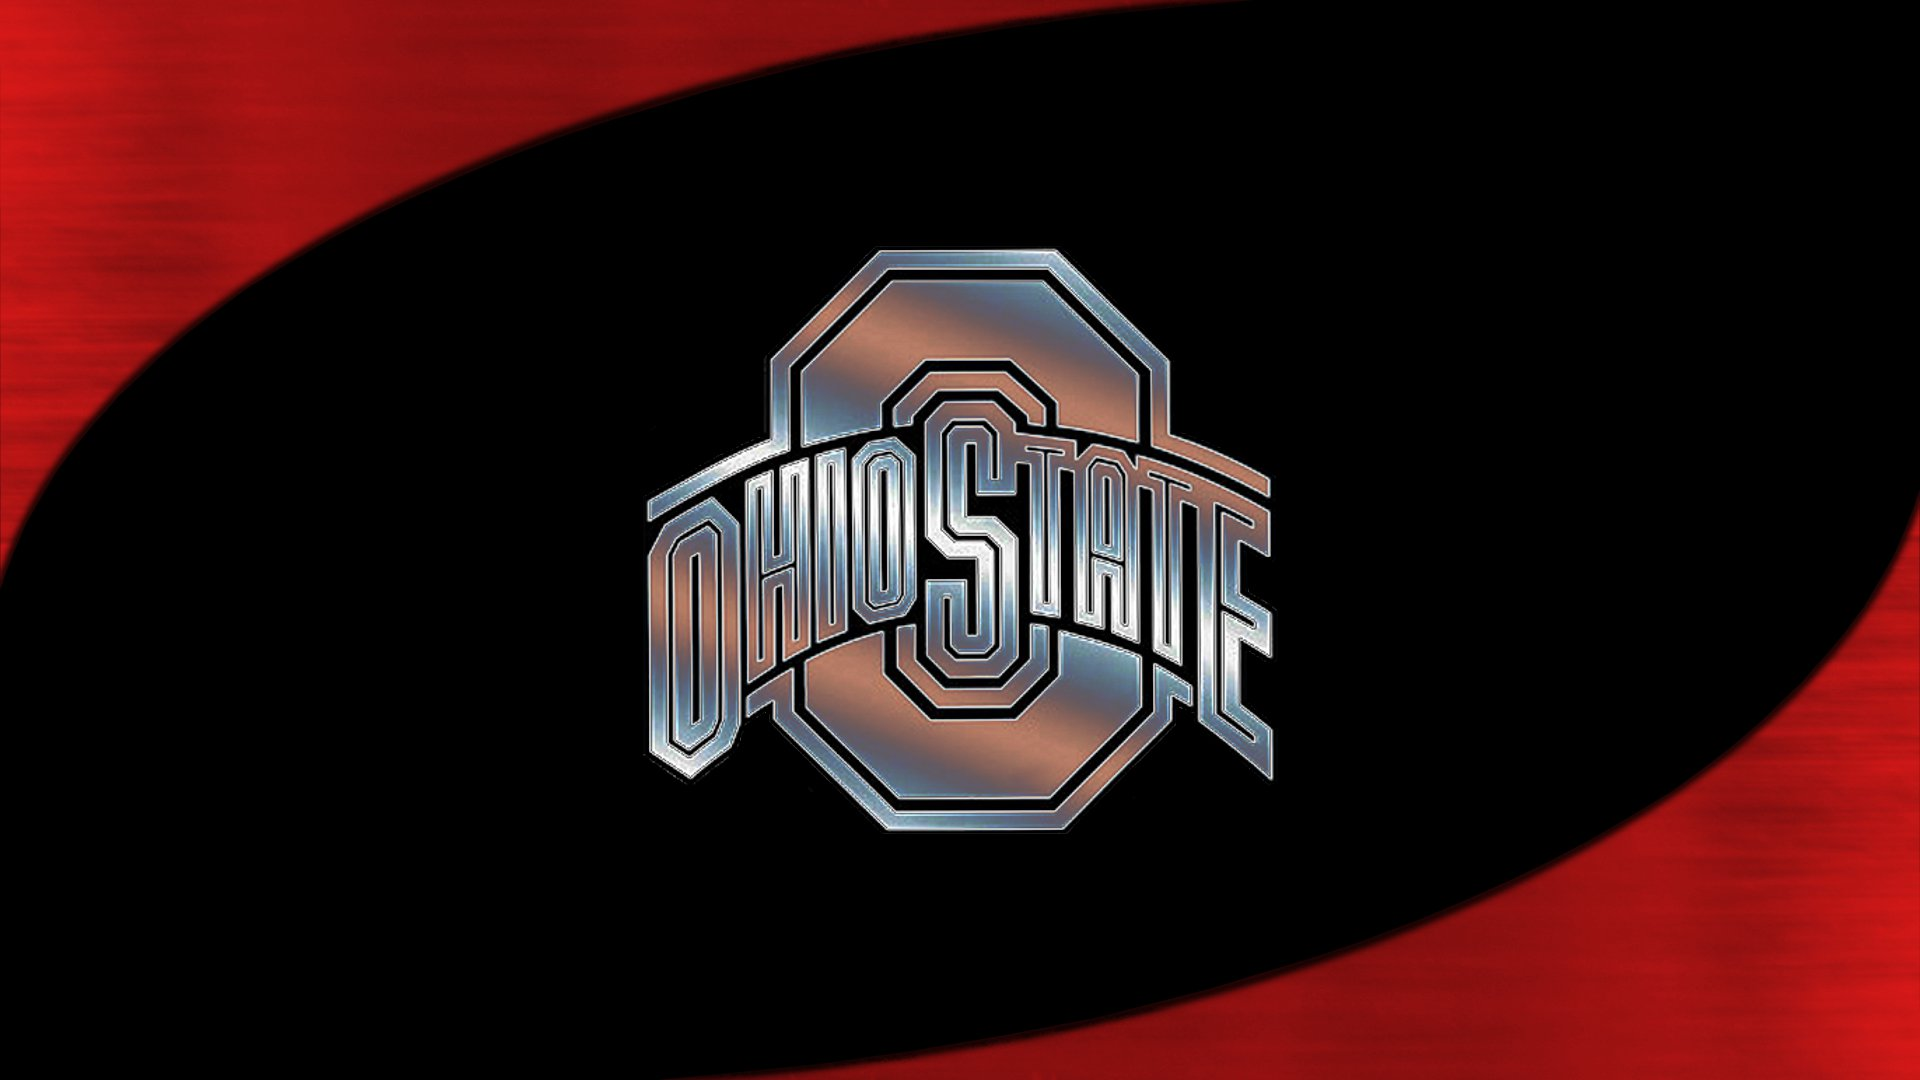 Ohio State Buckeyes HD Wallpaper, Best Ohio State Buckeyes HD 1920x1080